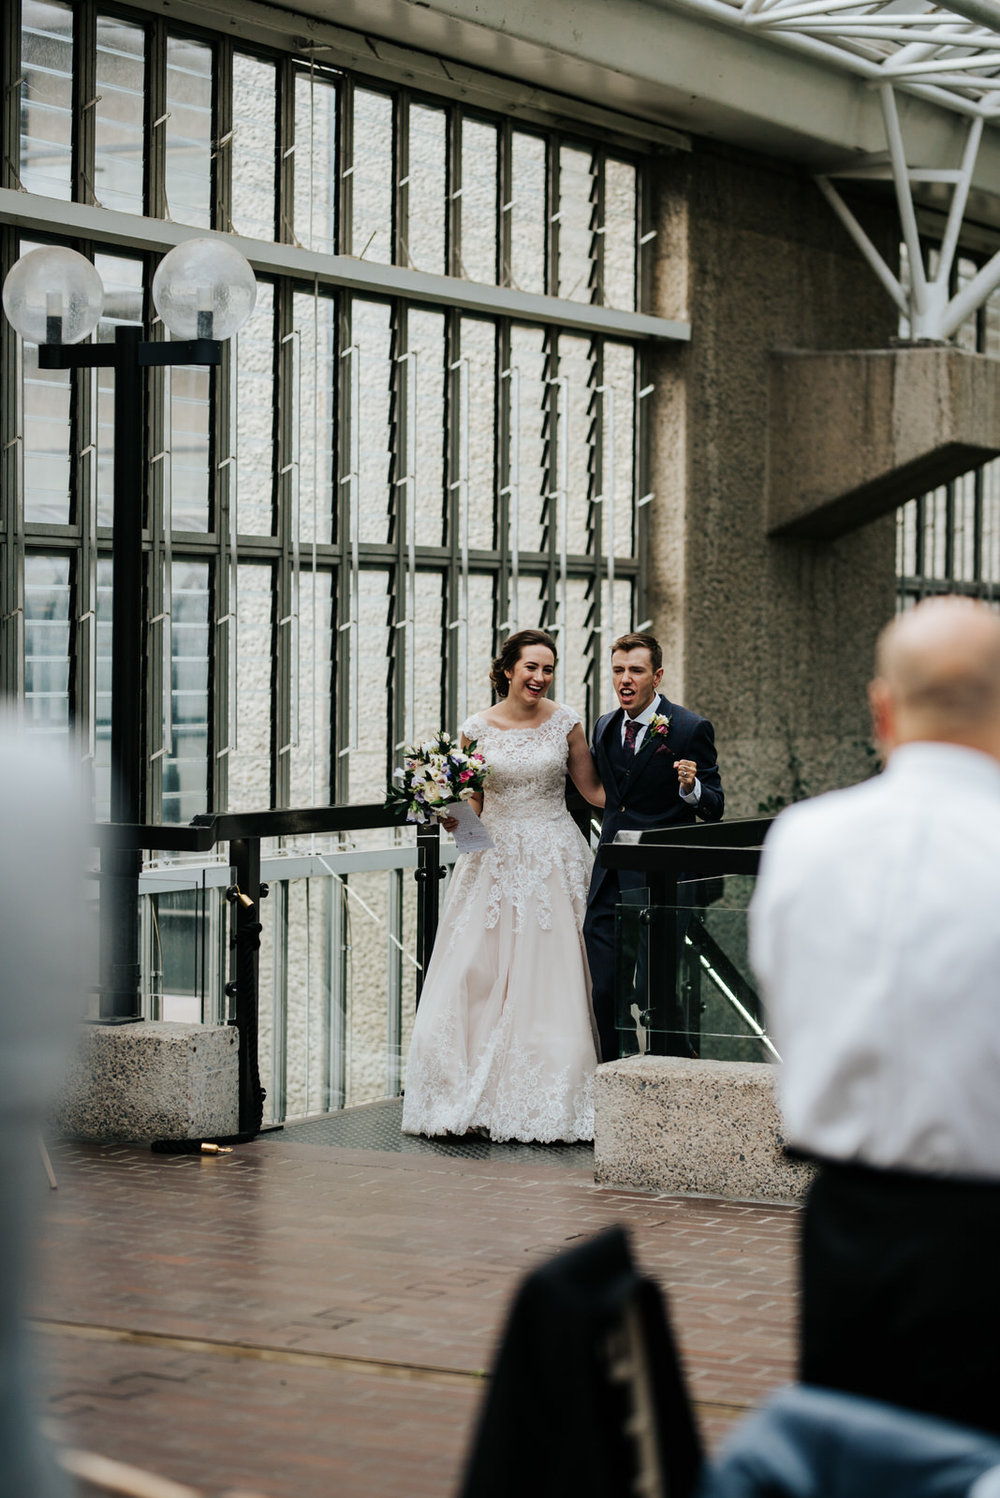 Bride and groom make their entrance into wedding breakfast room